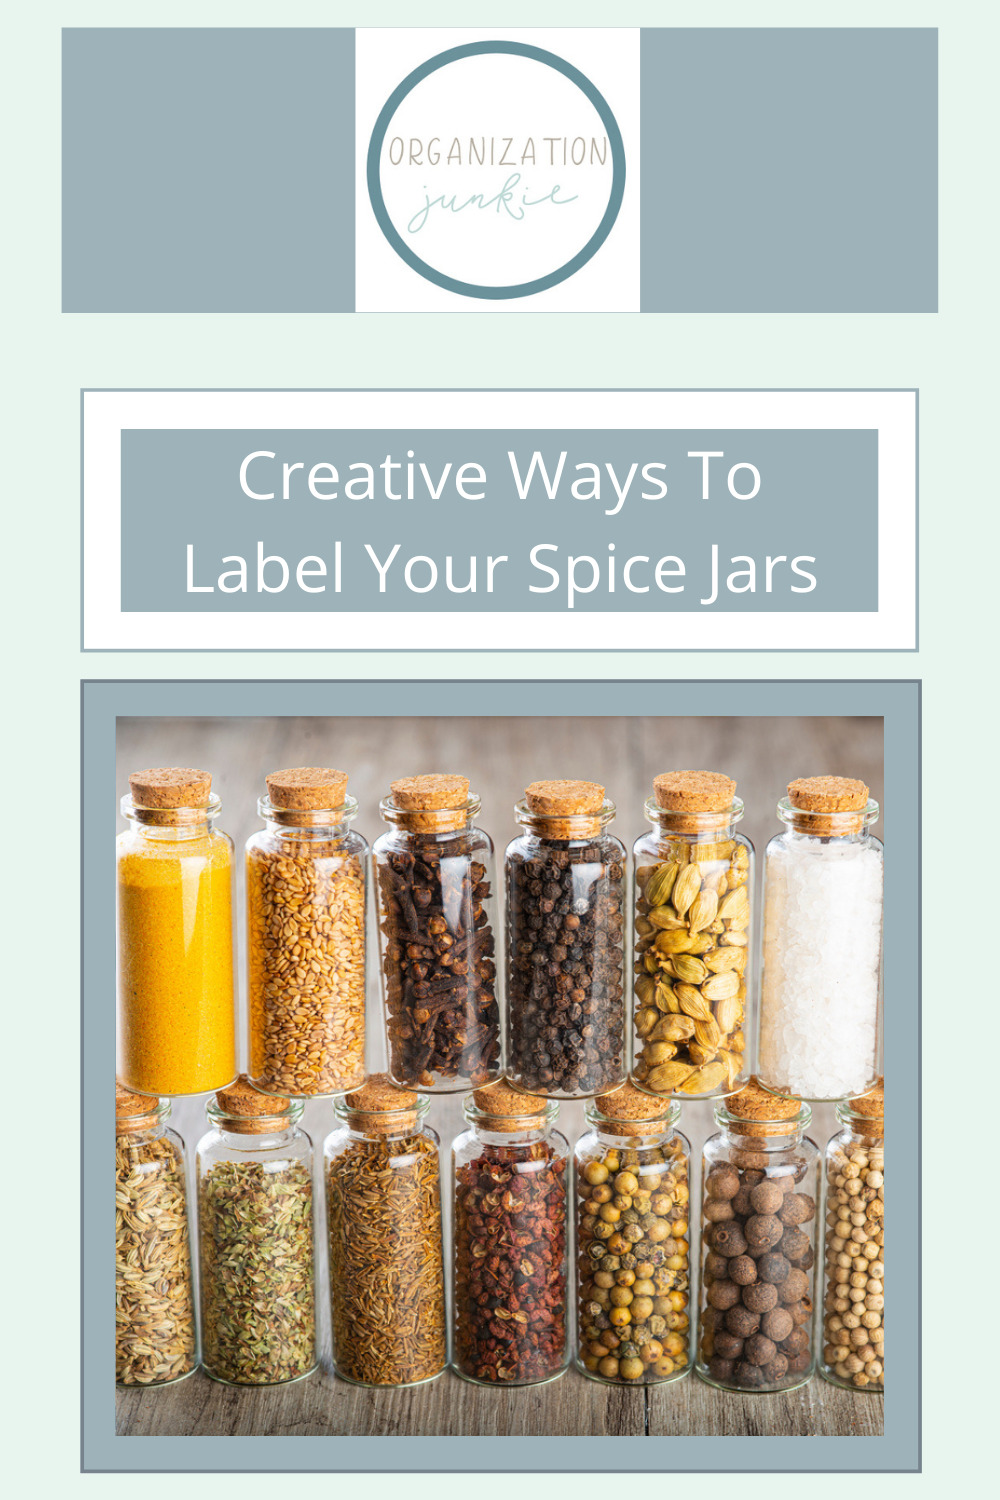 Organizationjunkie.com makes organizing your entire life easier than ever! Find creative ways to stay on top of day-to-day clutter. Make things easier by using these clever spice jar labels!